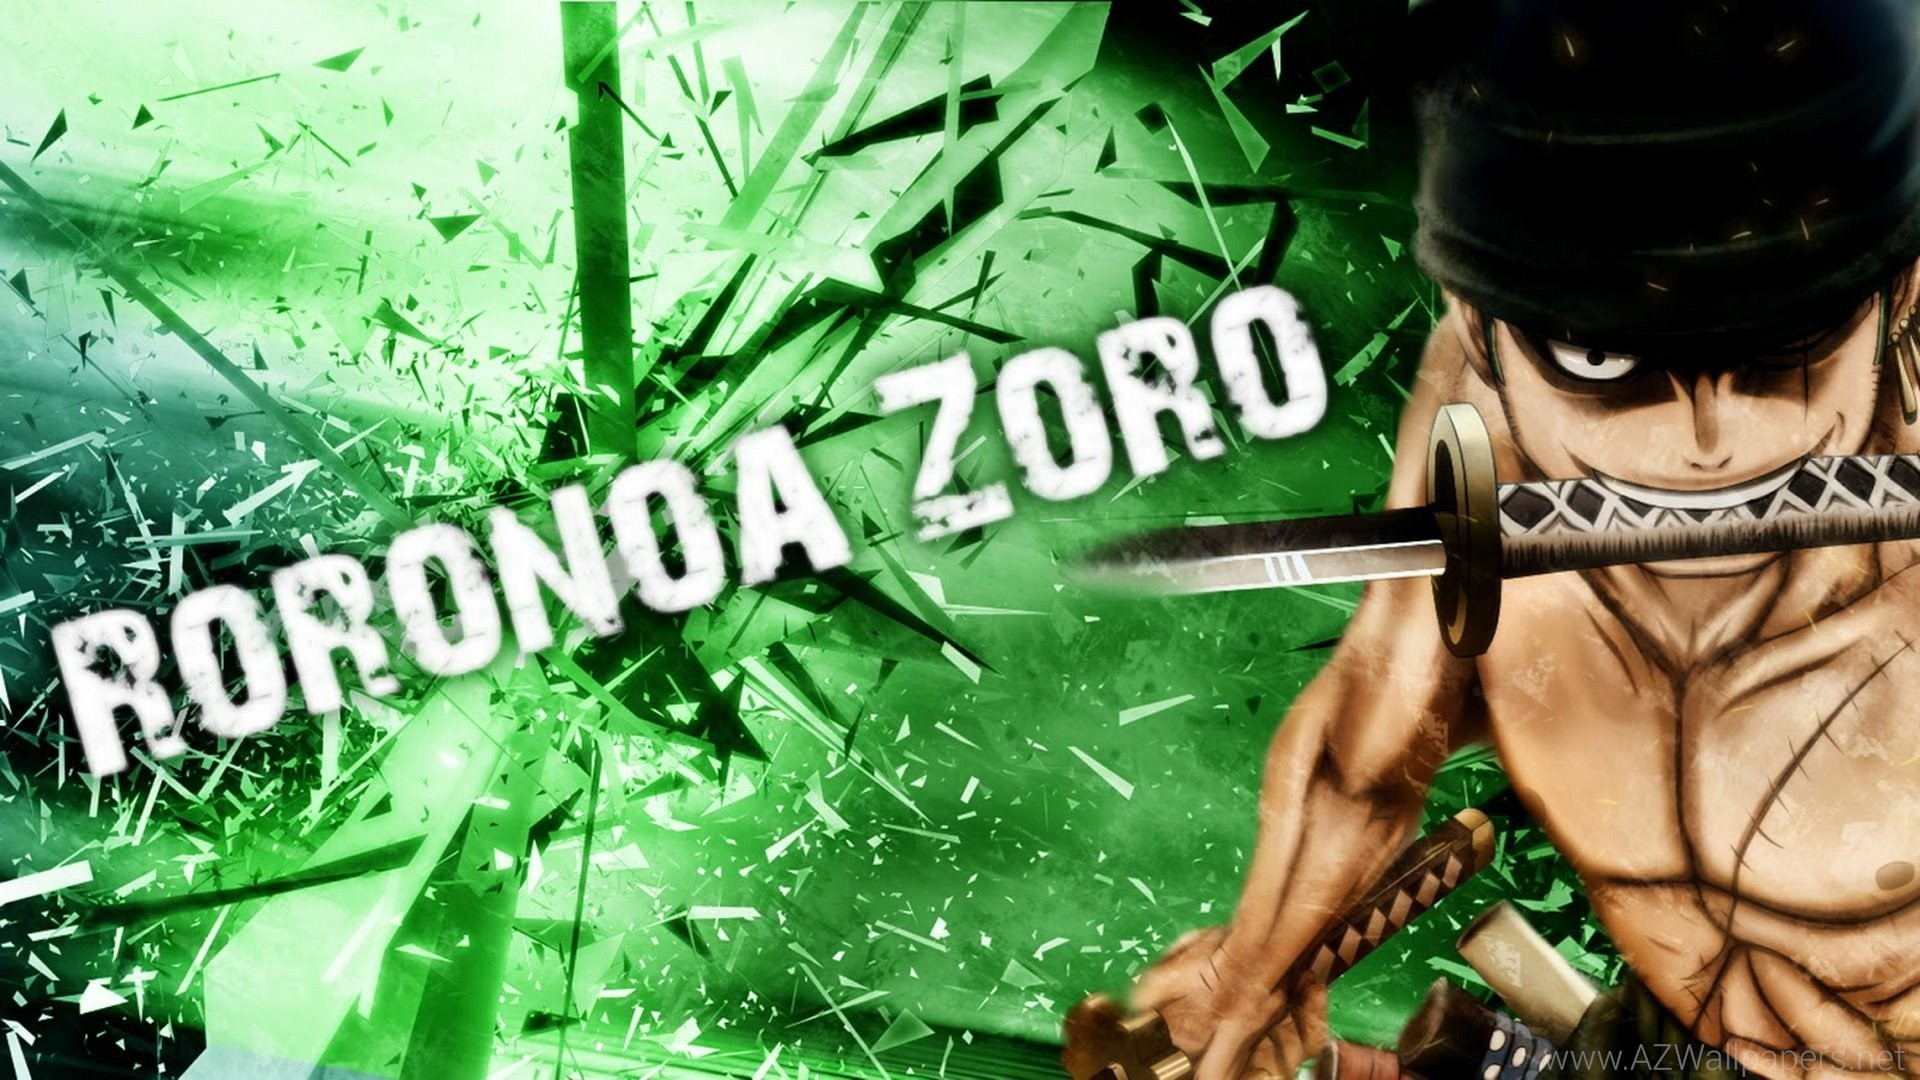 1920x1080 one piece zoro wallpaper #1136728